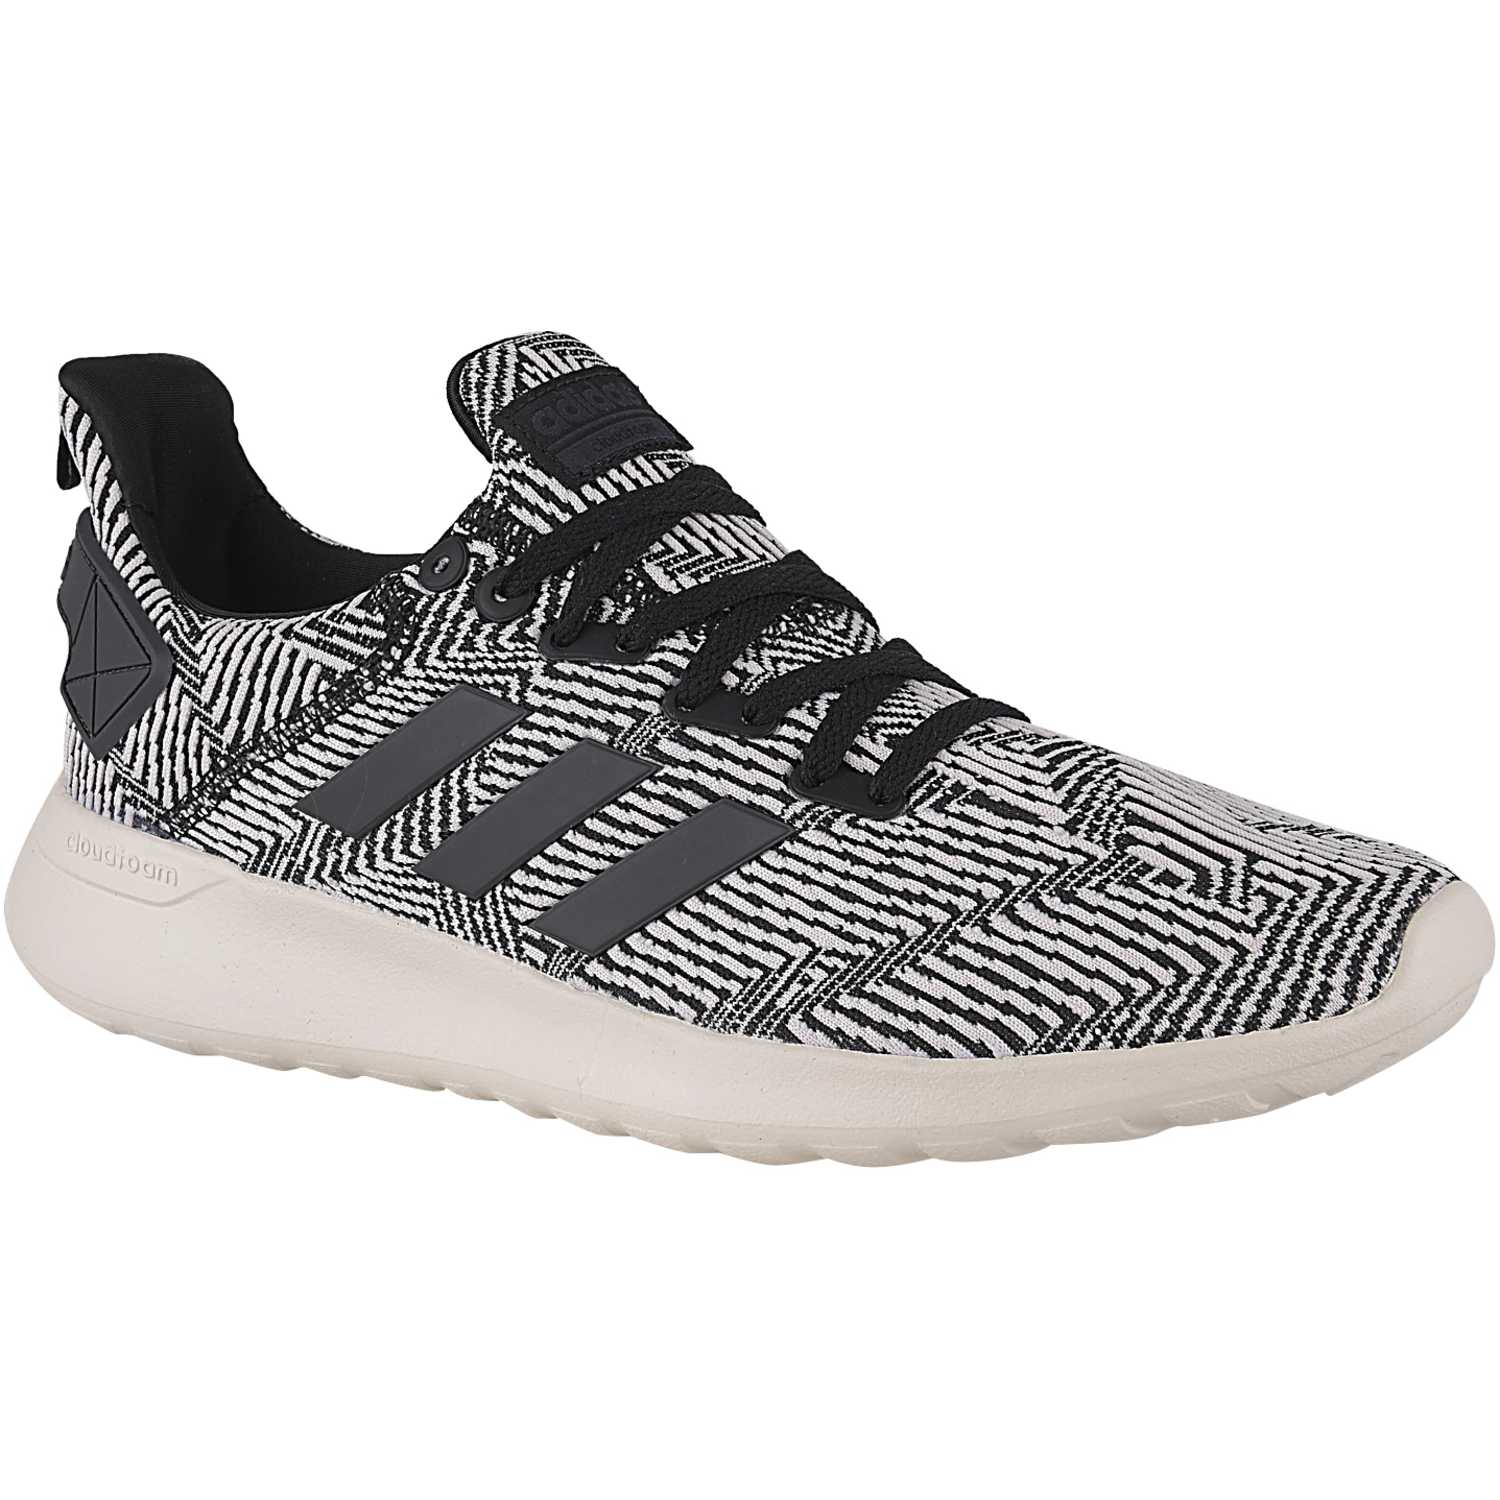 outlet store 50864 258ab Zapatilla de Hombre adidas NEO Gris  negro lite racer byd